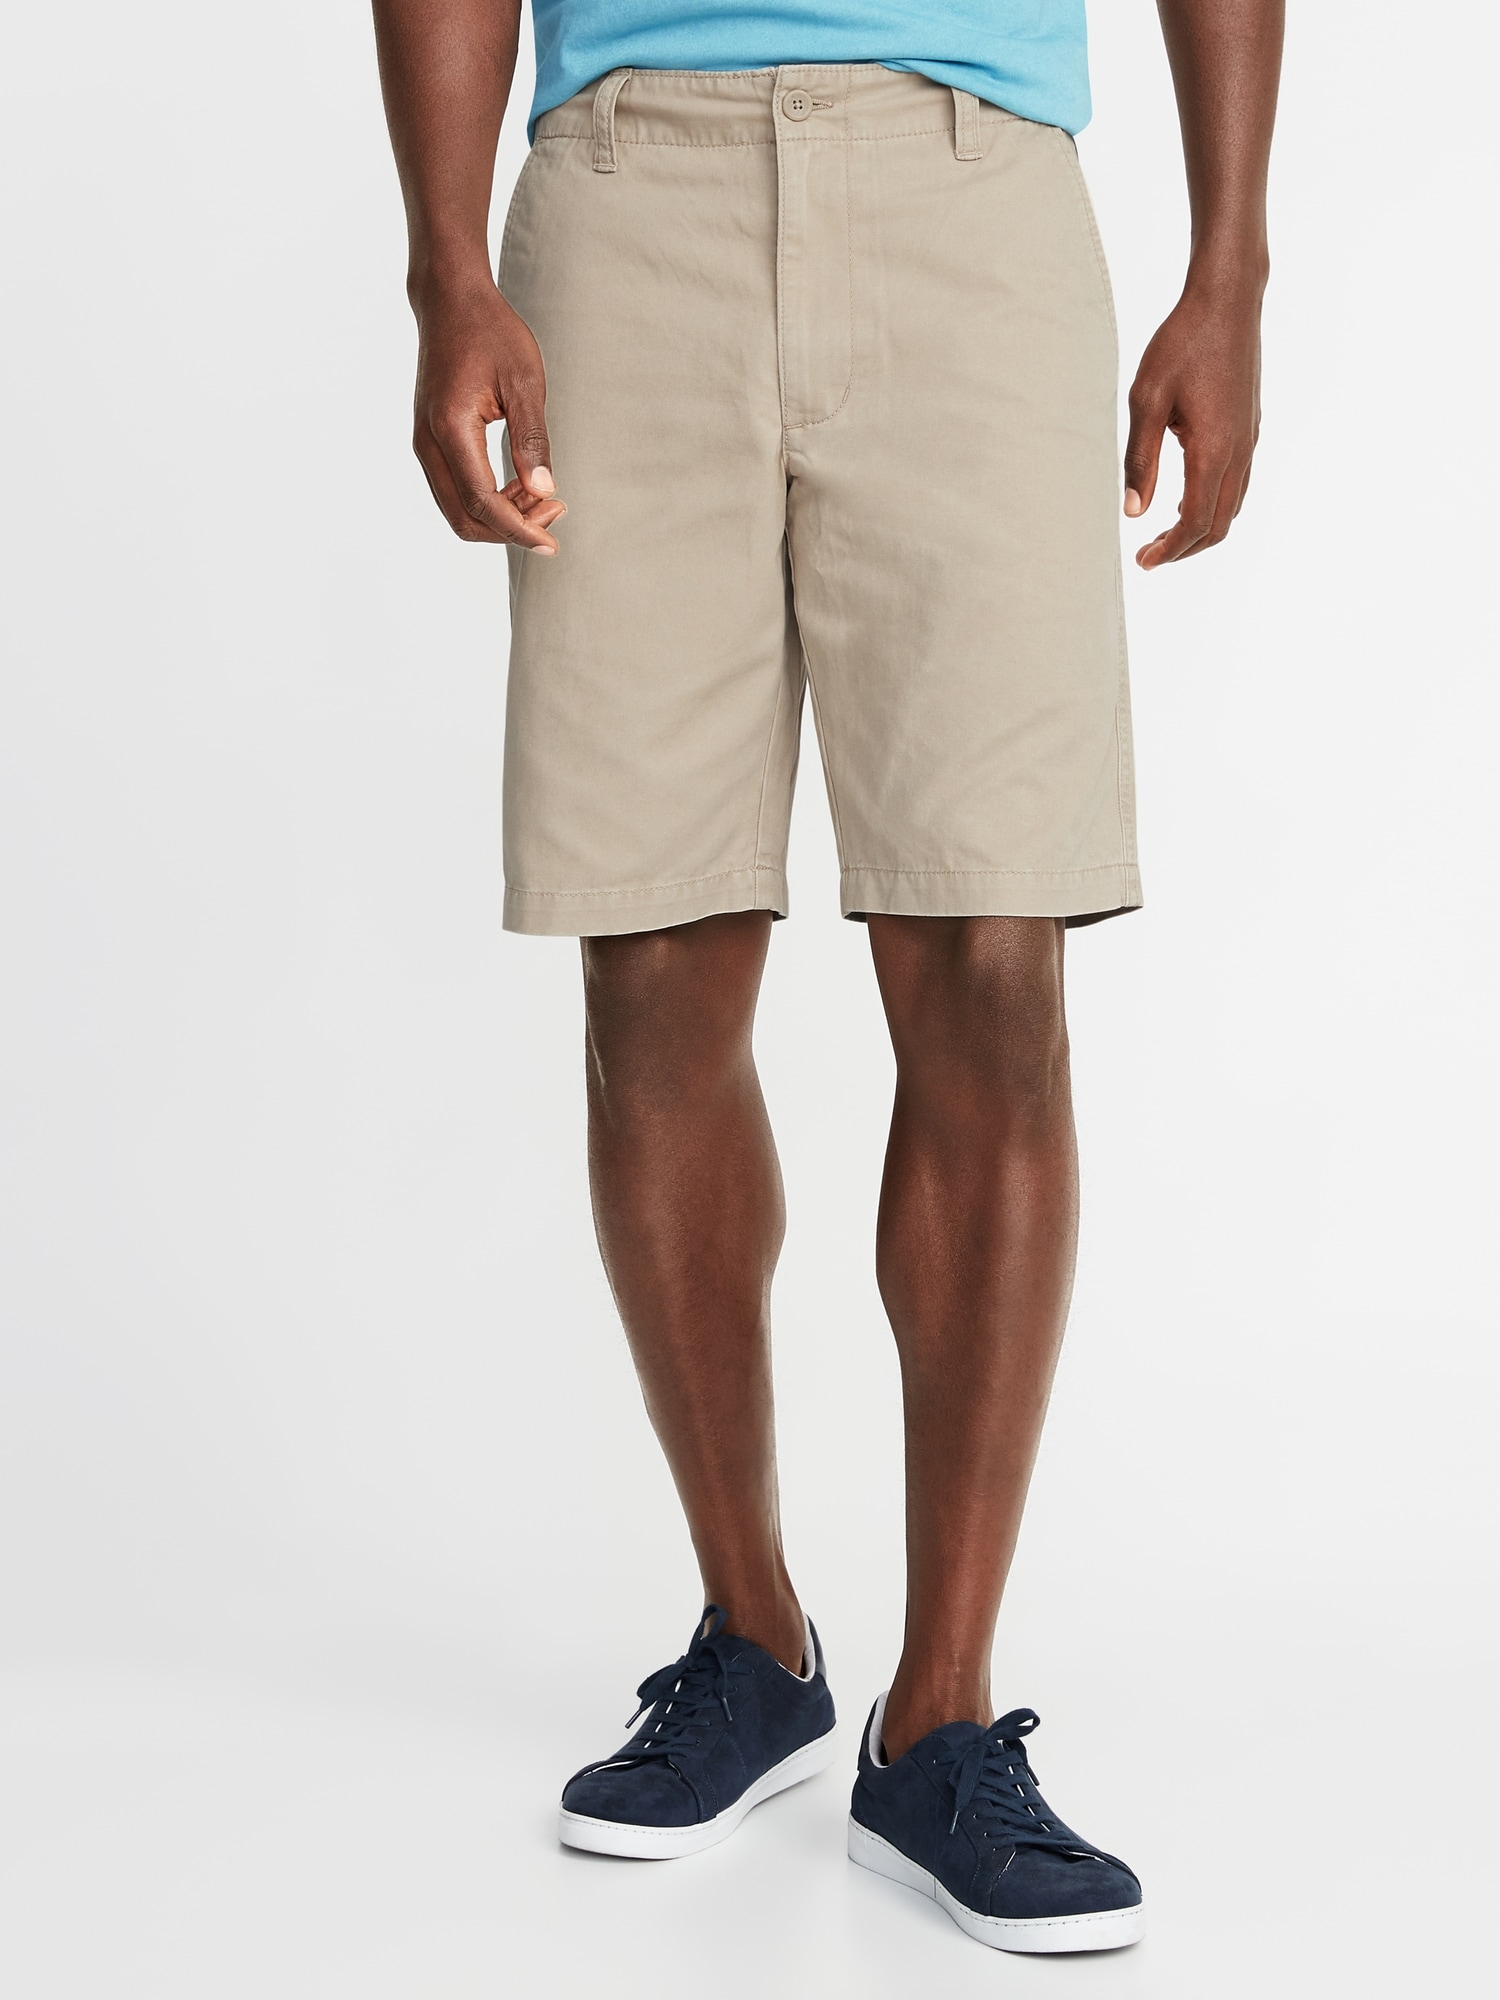 14babe28e9 Straight Lived-In Khaki Shorts for Men - 10-inch inseam | Old Navy